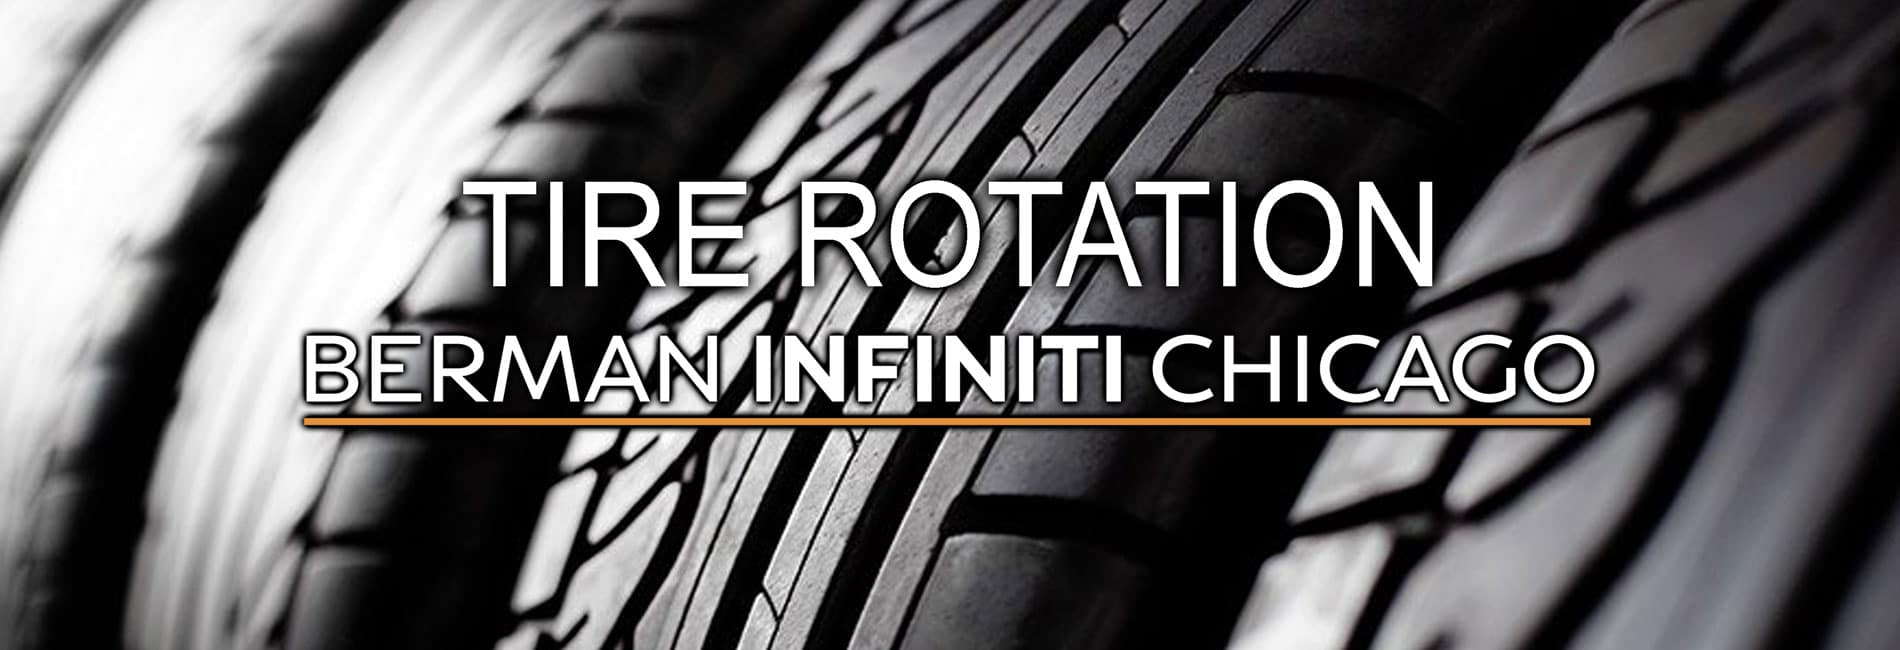 INFINITI Tire Rotation Service at Berman INFINITI Chicago